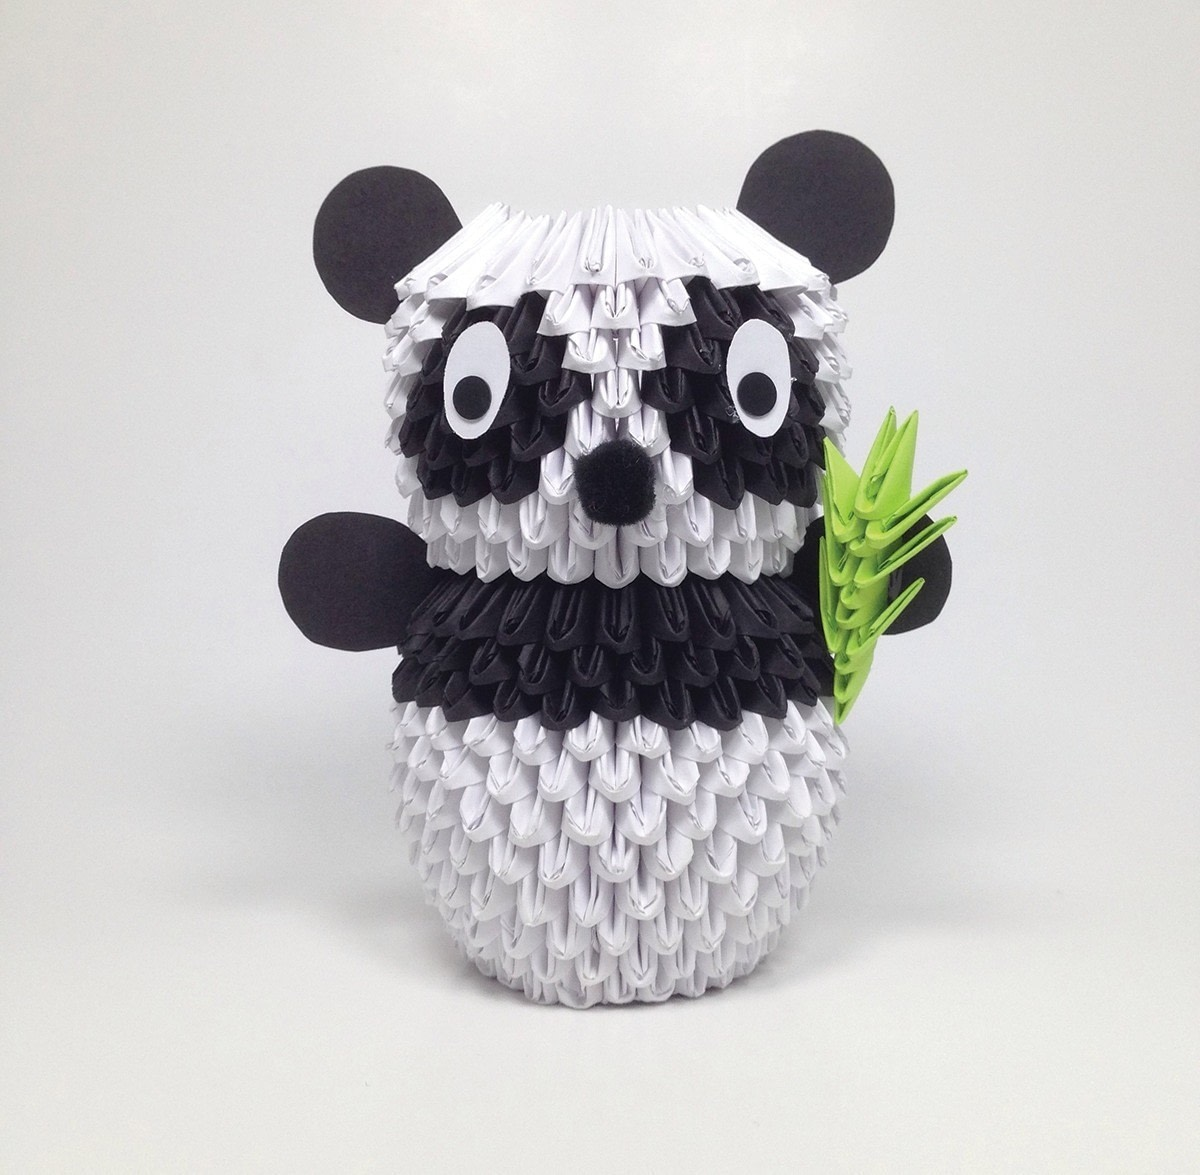 3D Origami Panda · Extract from 3D Origami Fun! by ... - photo#38